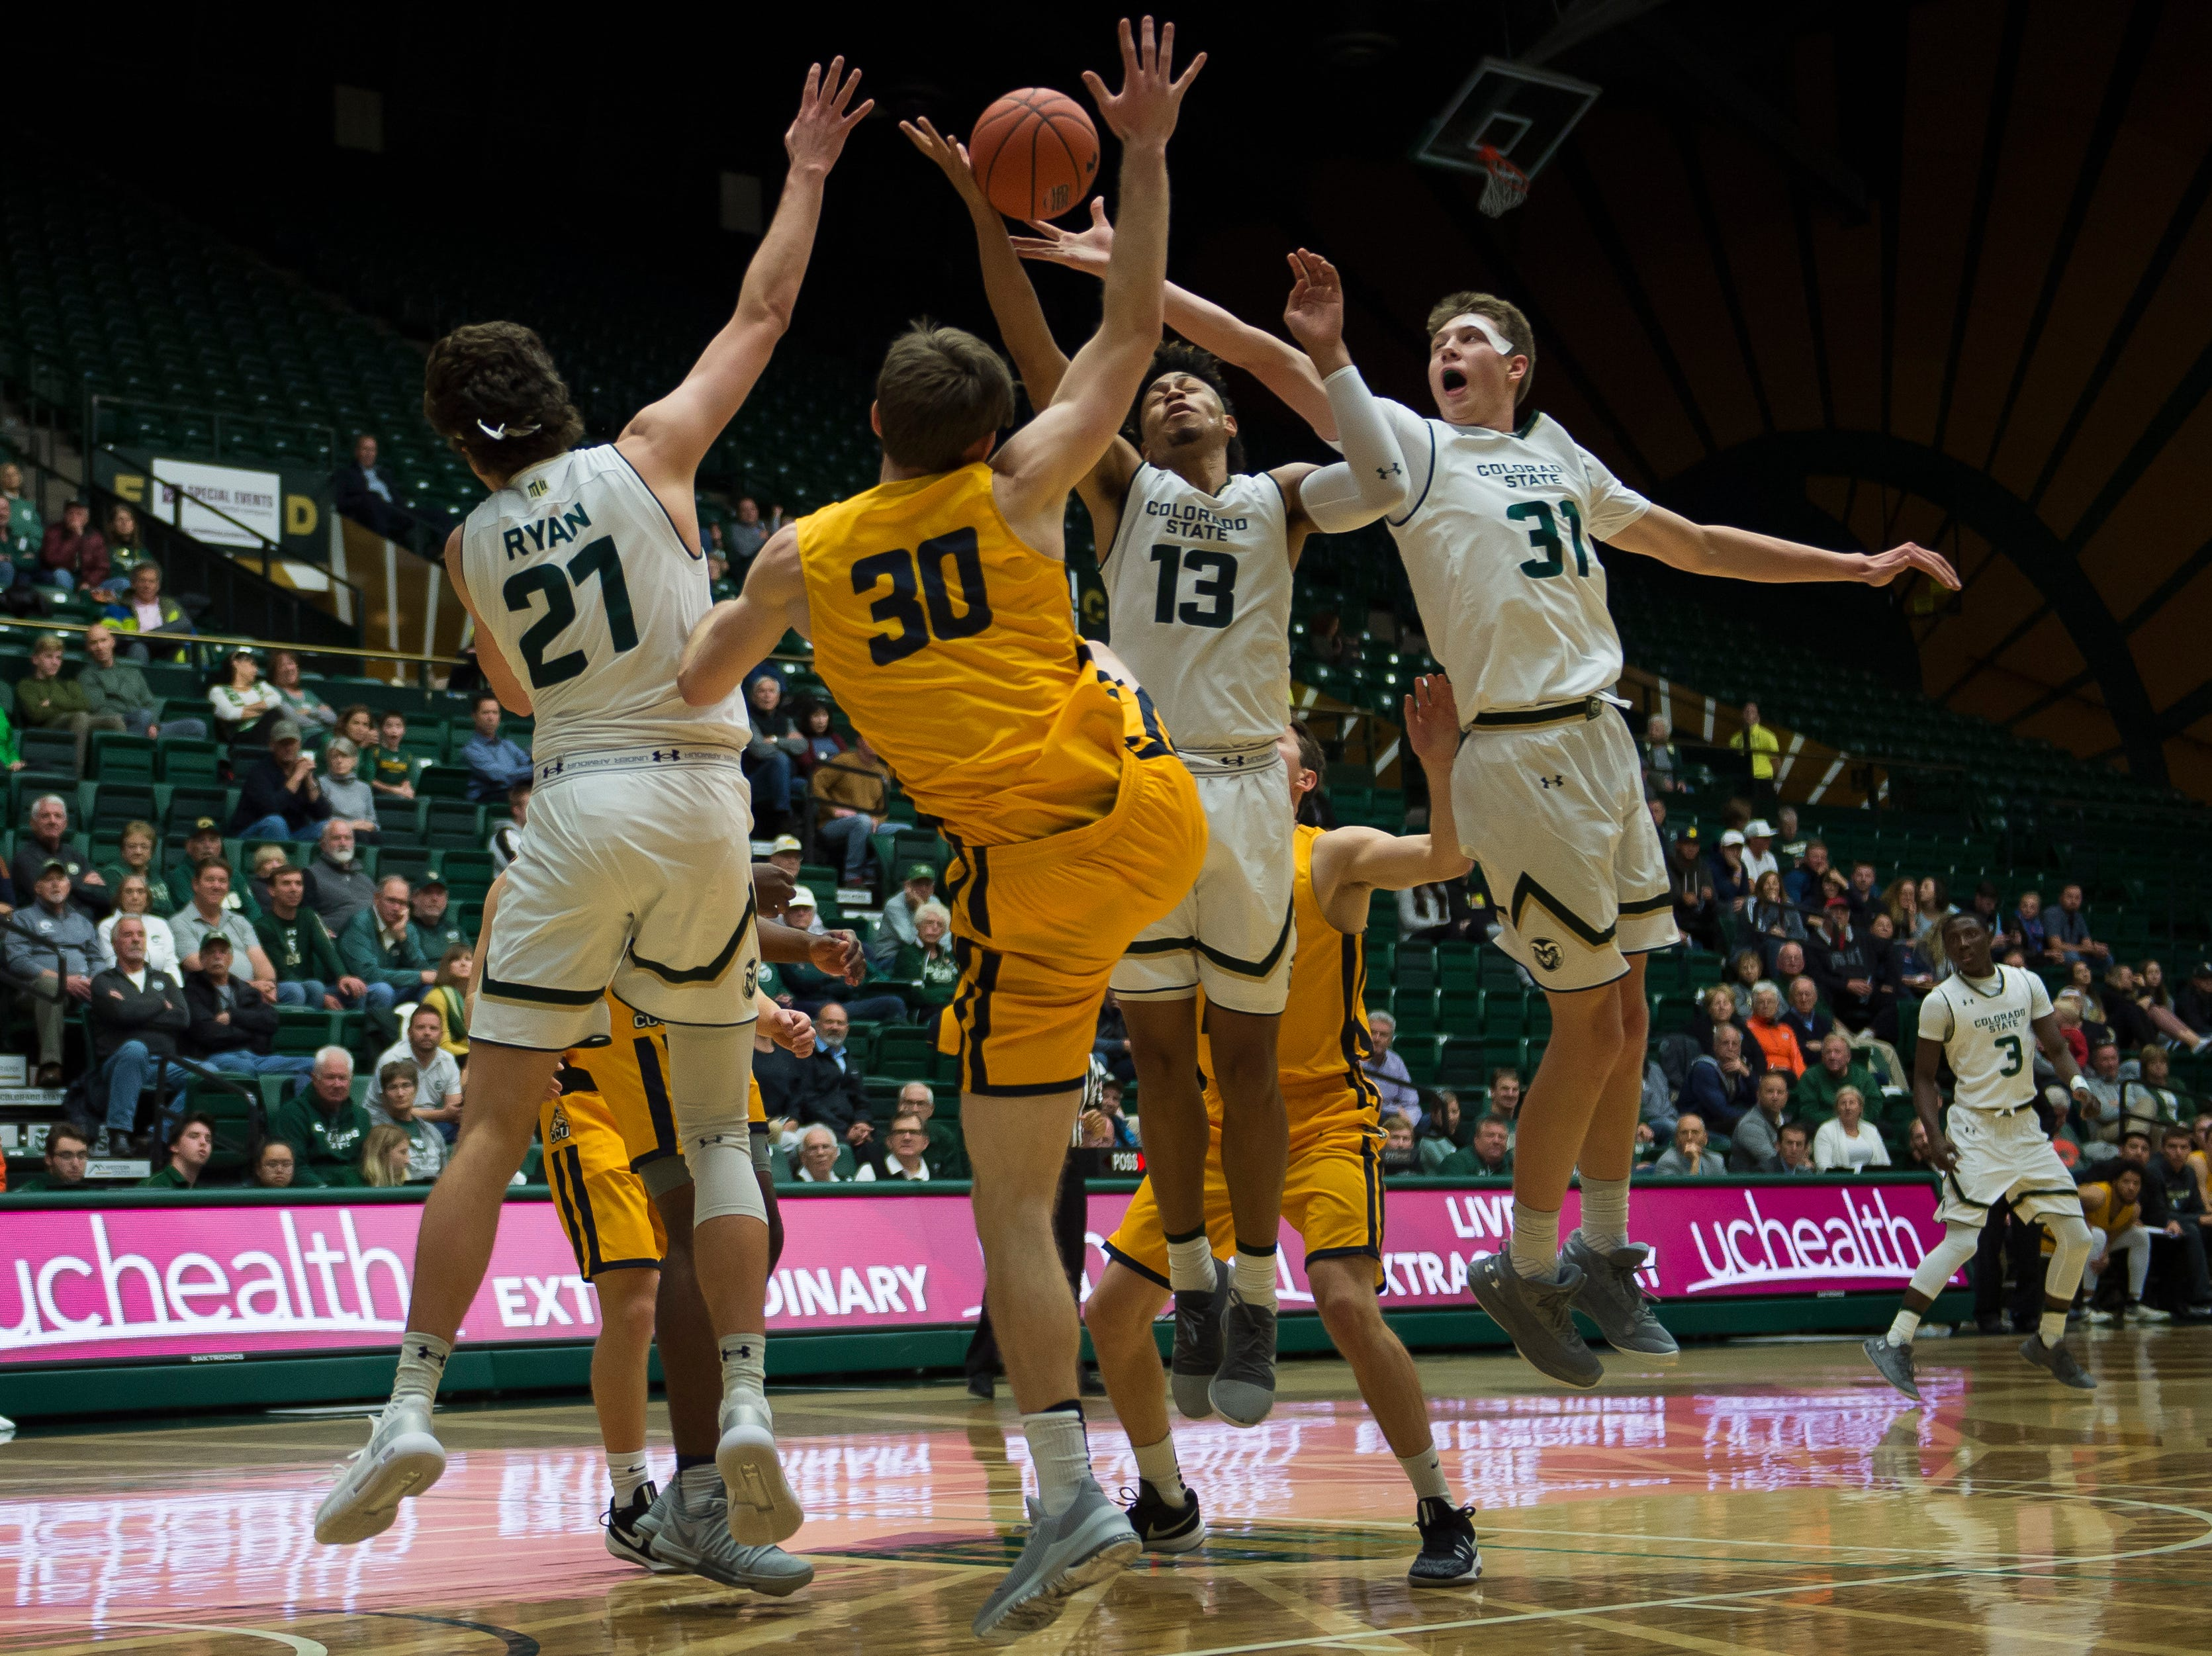 Colorado State University freshman forward Adam Thistlewood (31) goes up for a rebound during a game against Colorado Christian University on Wednesday, Nov. 7, 2018, at Moby Arena in Fort Collins, Colo.